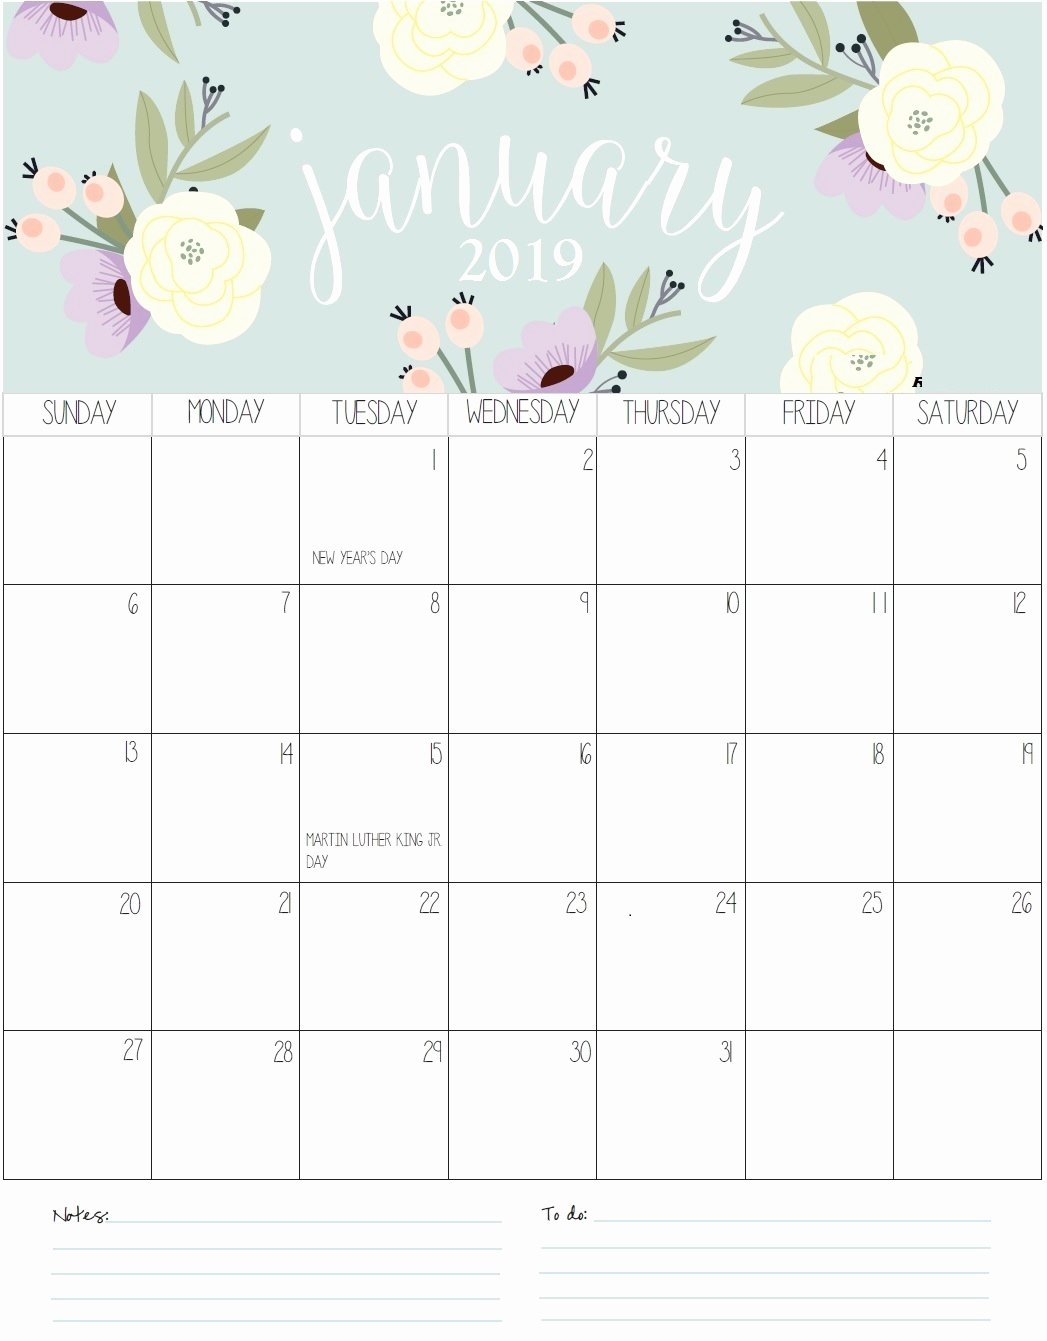 Monthly Calendar Template 2019 Awesome Monthly Printable Calendar 2019